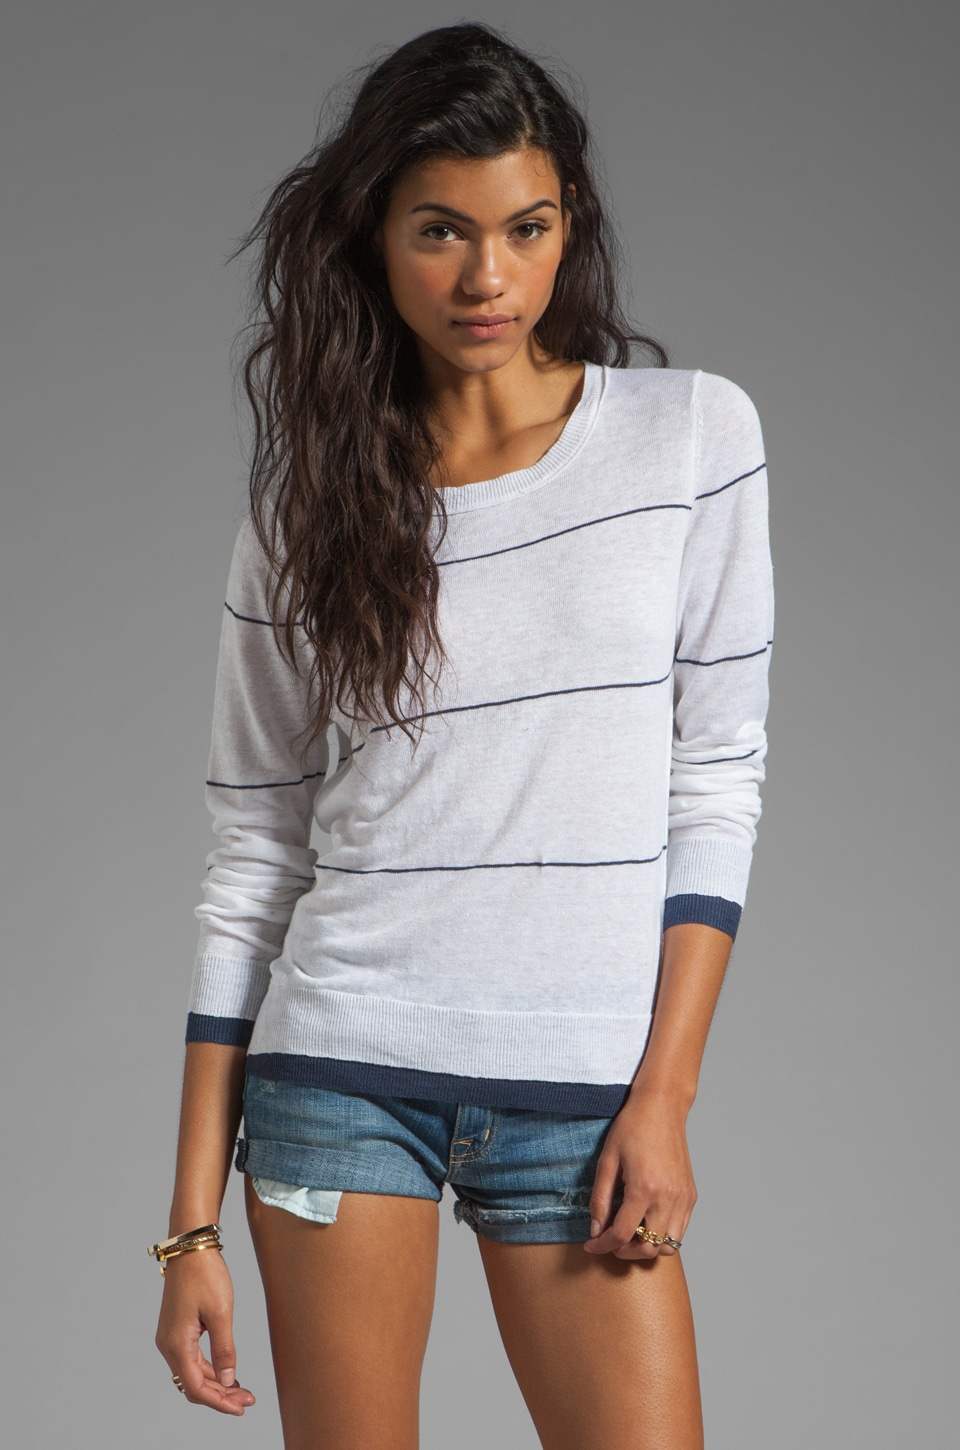 360 Sweater Grace Linen Stripe Sweater in White/Indigo